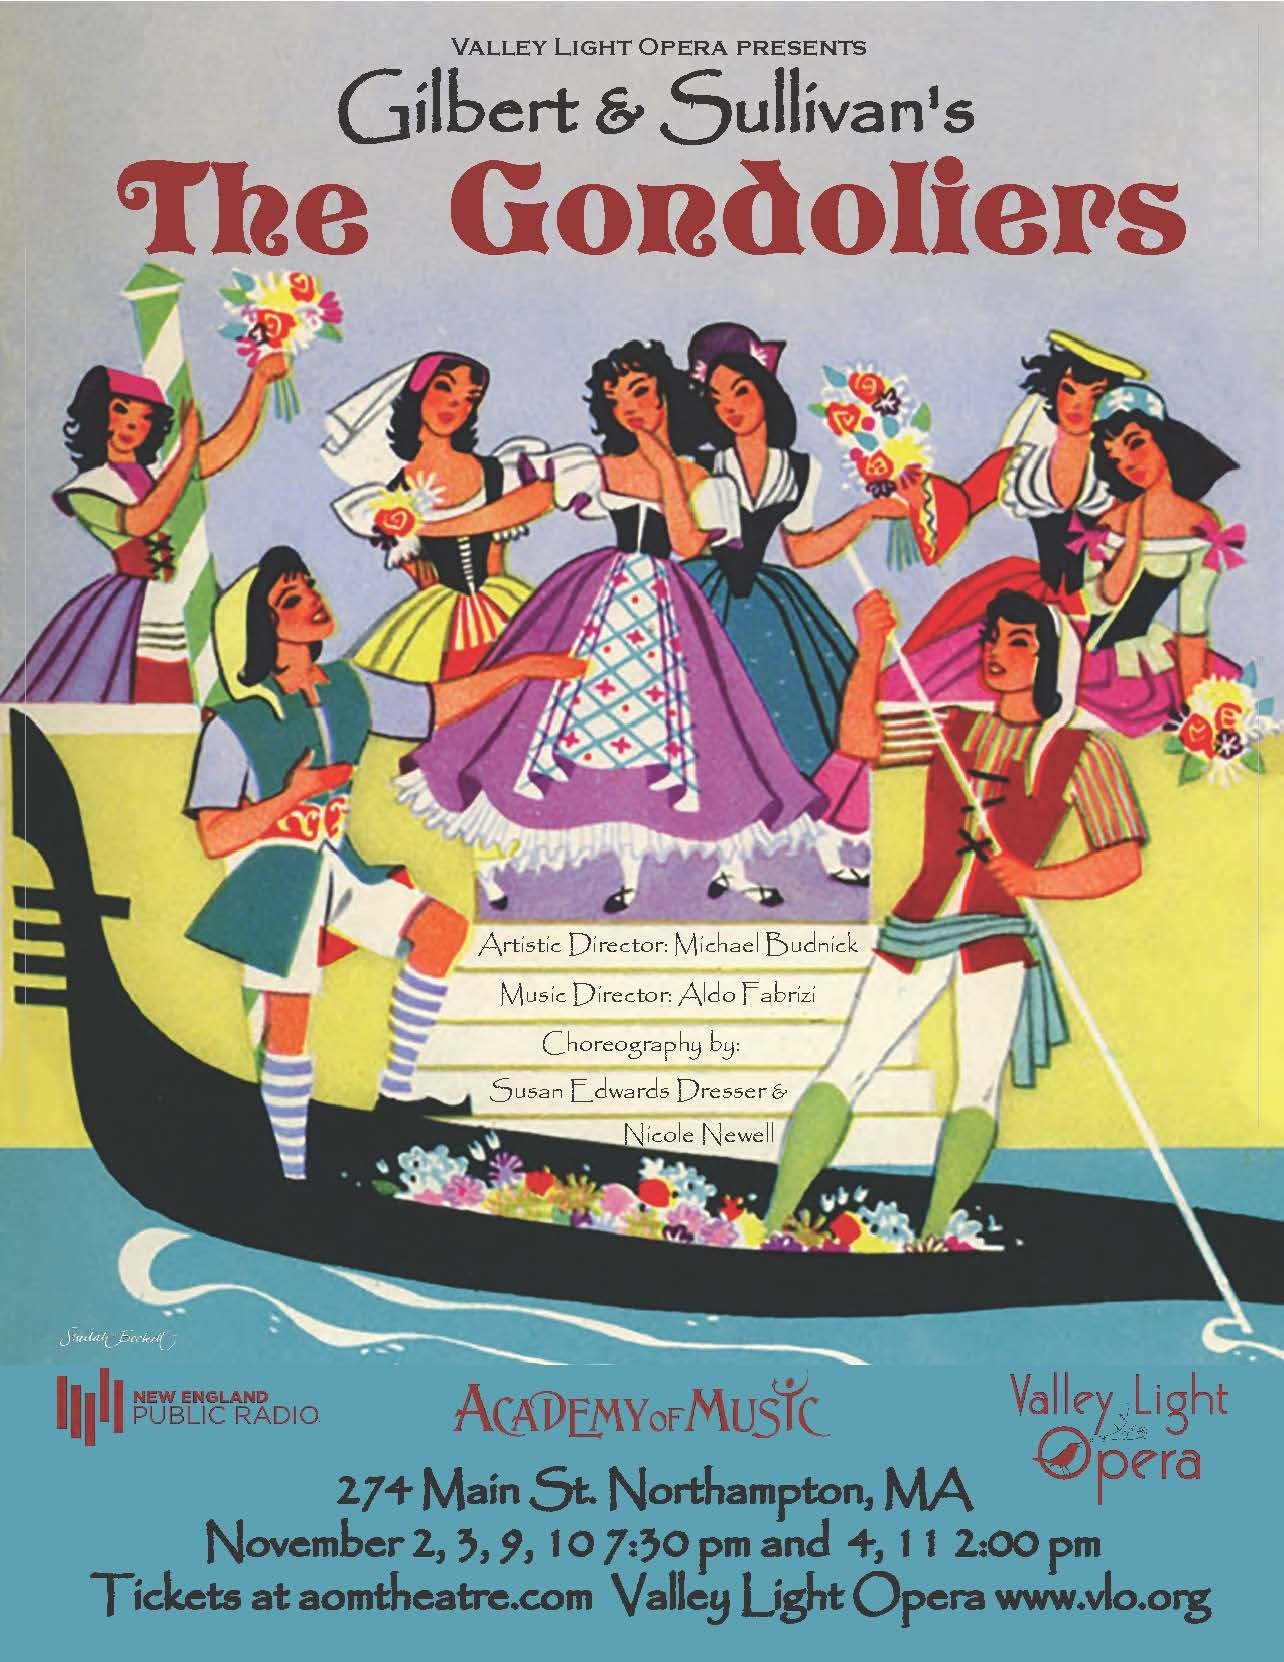 Valley Light Opera presents Gilbert and Sullivan's The Gondoliers